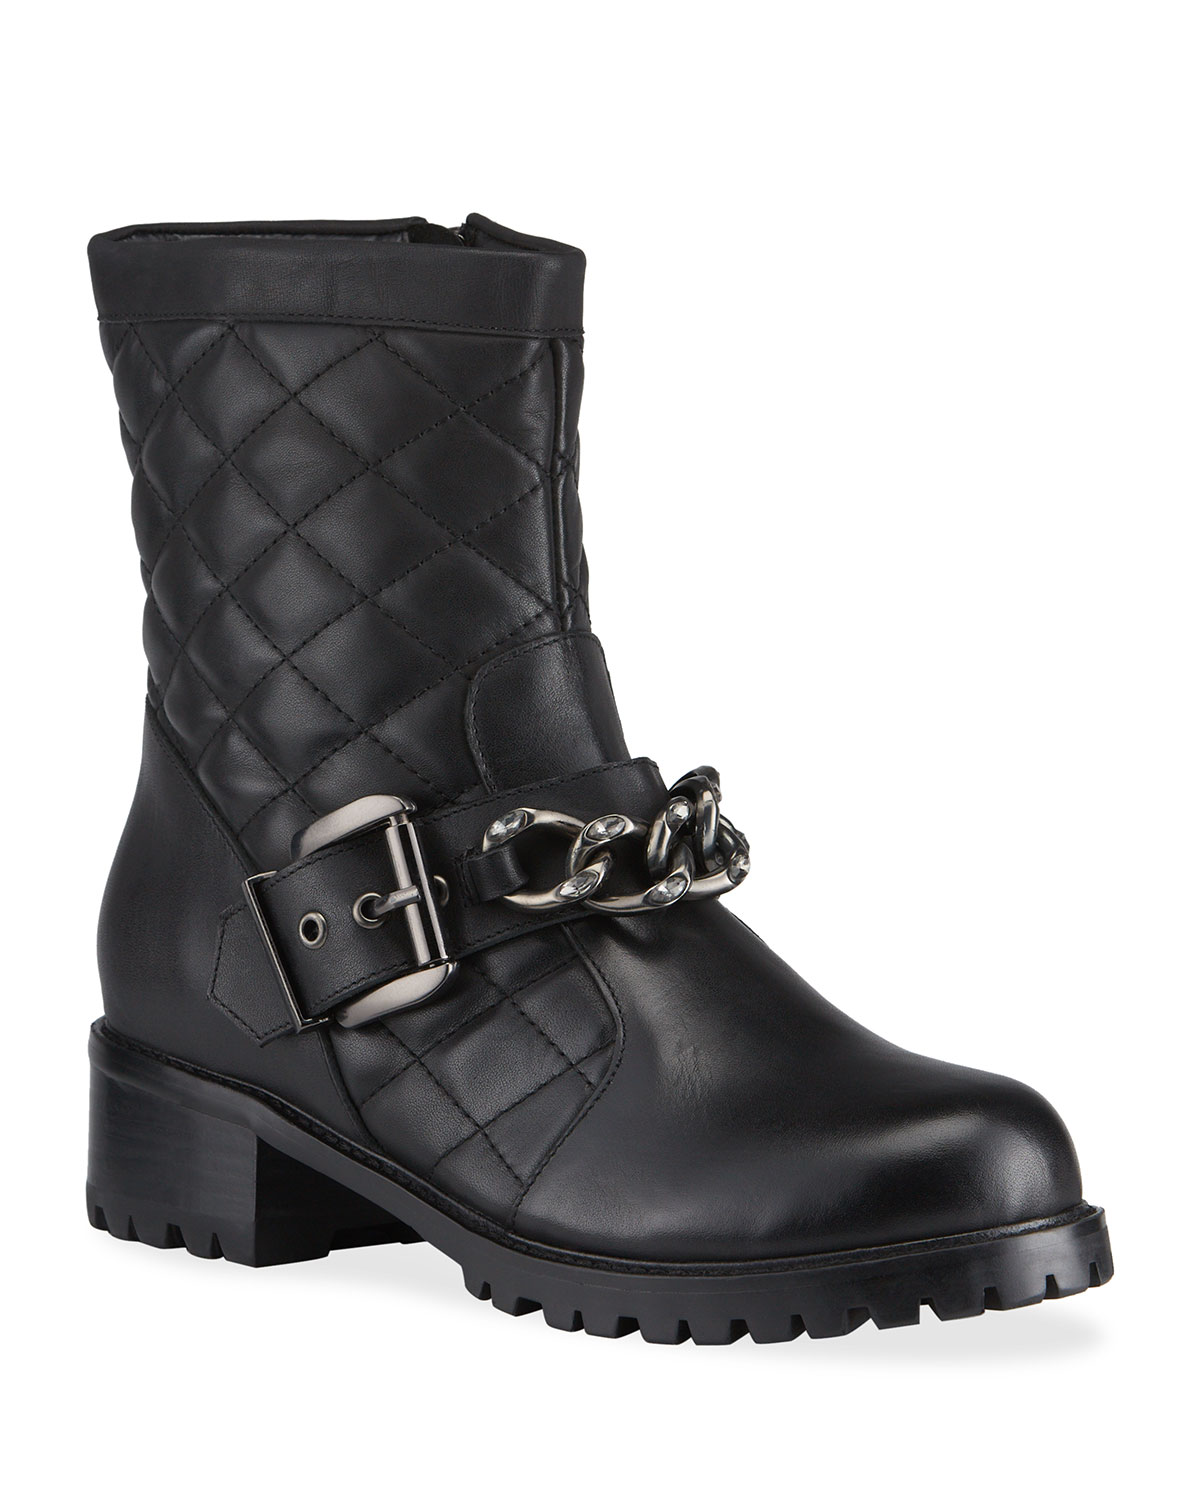 Cate Quilted Leather Chain Biker Boots